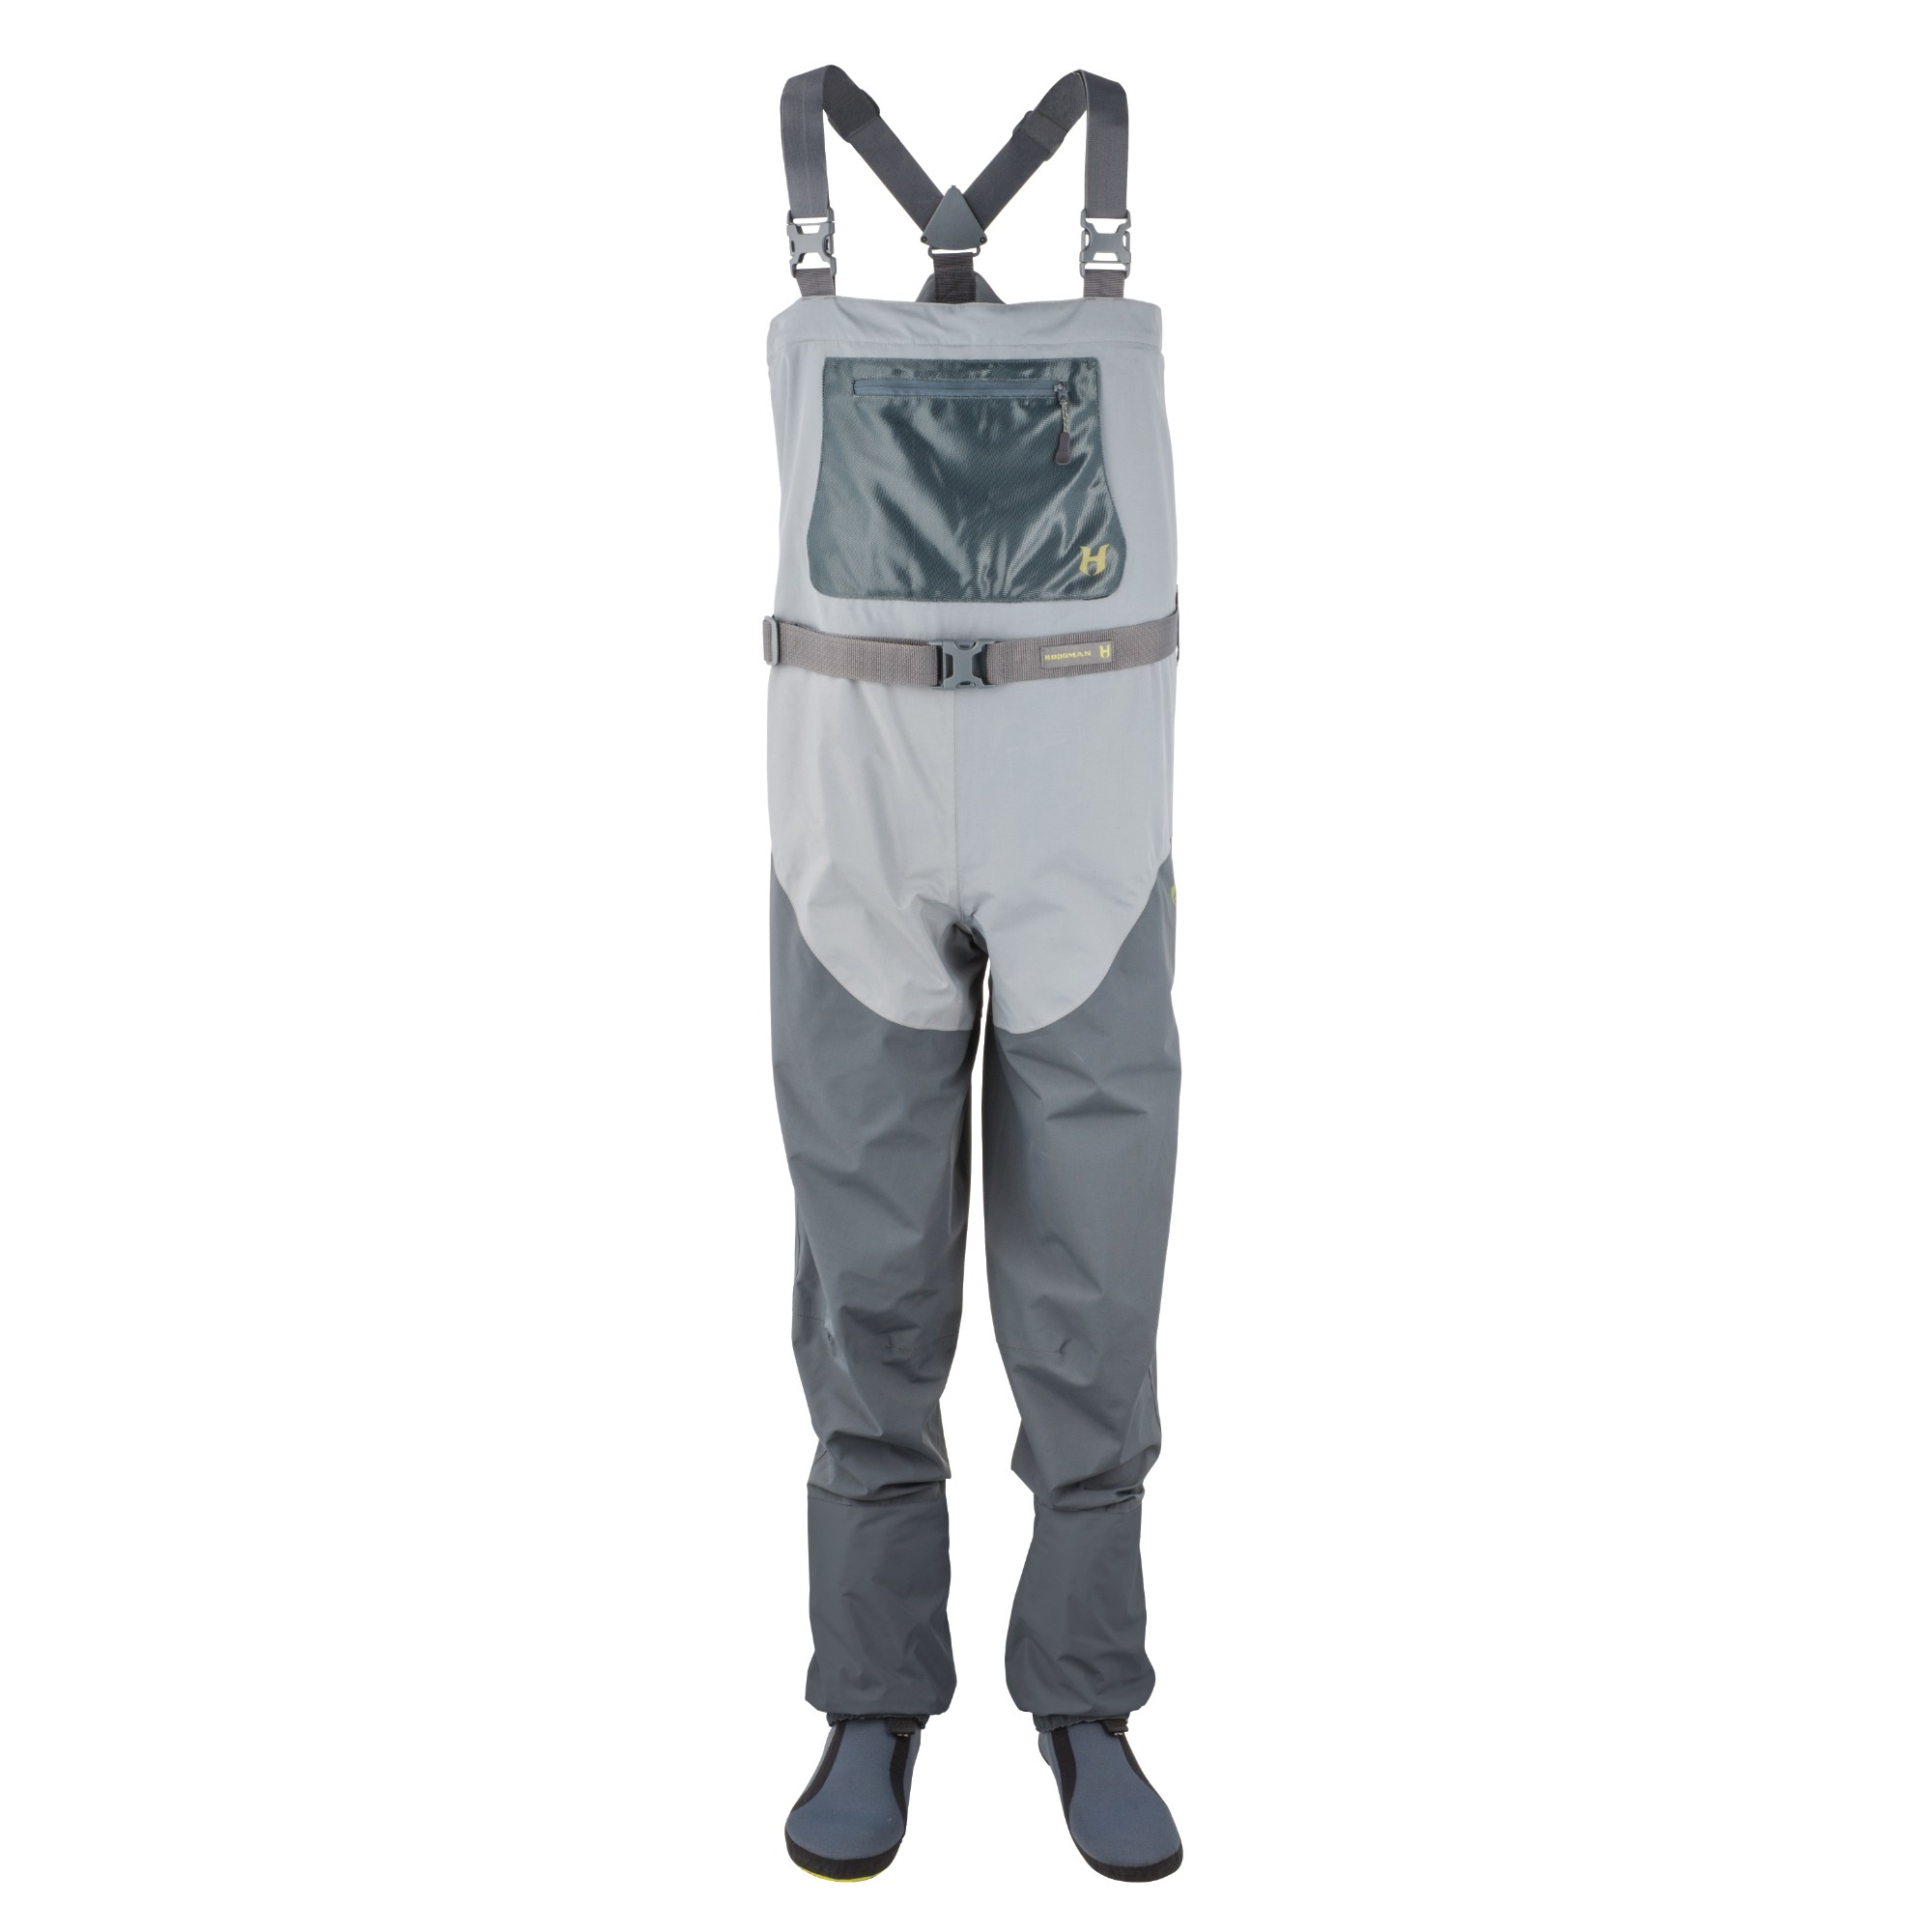 Hodgman Hodgman H4 Stocking Foot Chest Waders Storm Grey/Charcoal